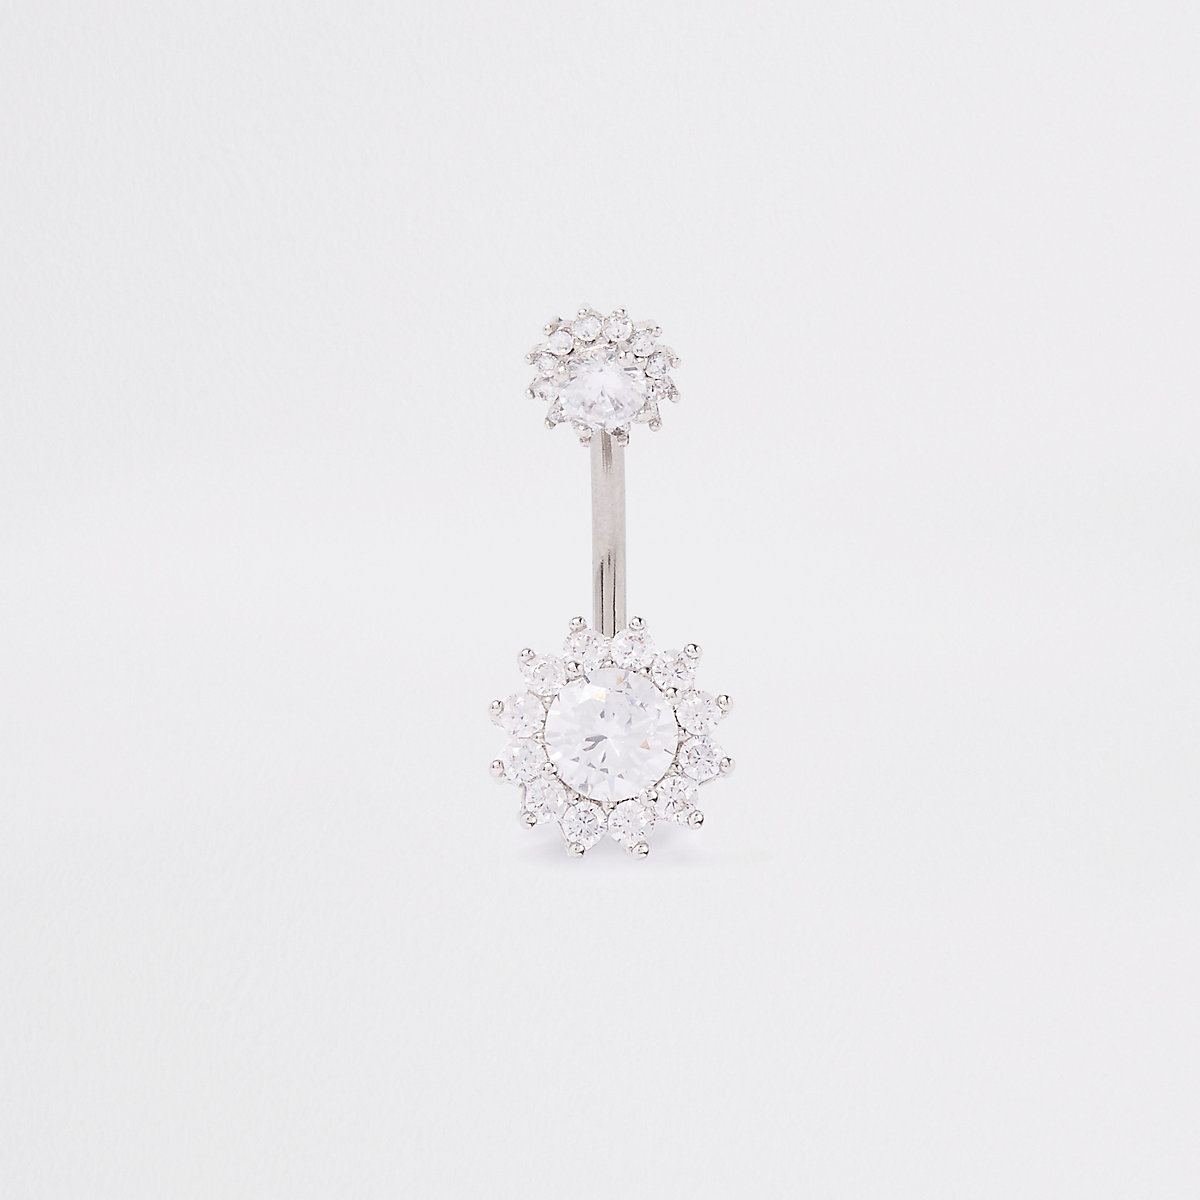 White silver cubic zirconia belly bar